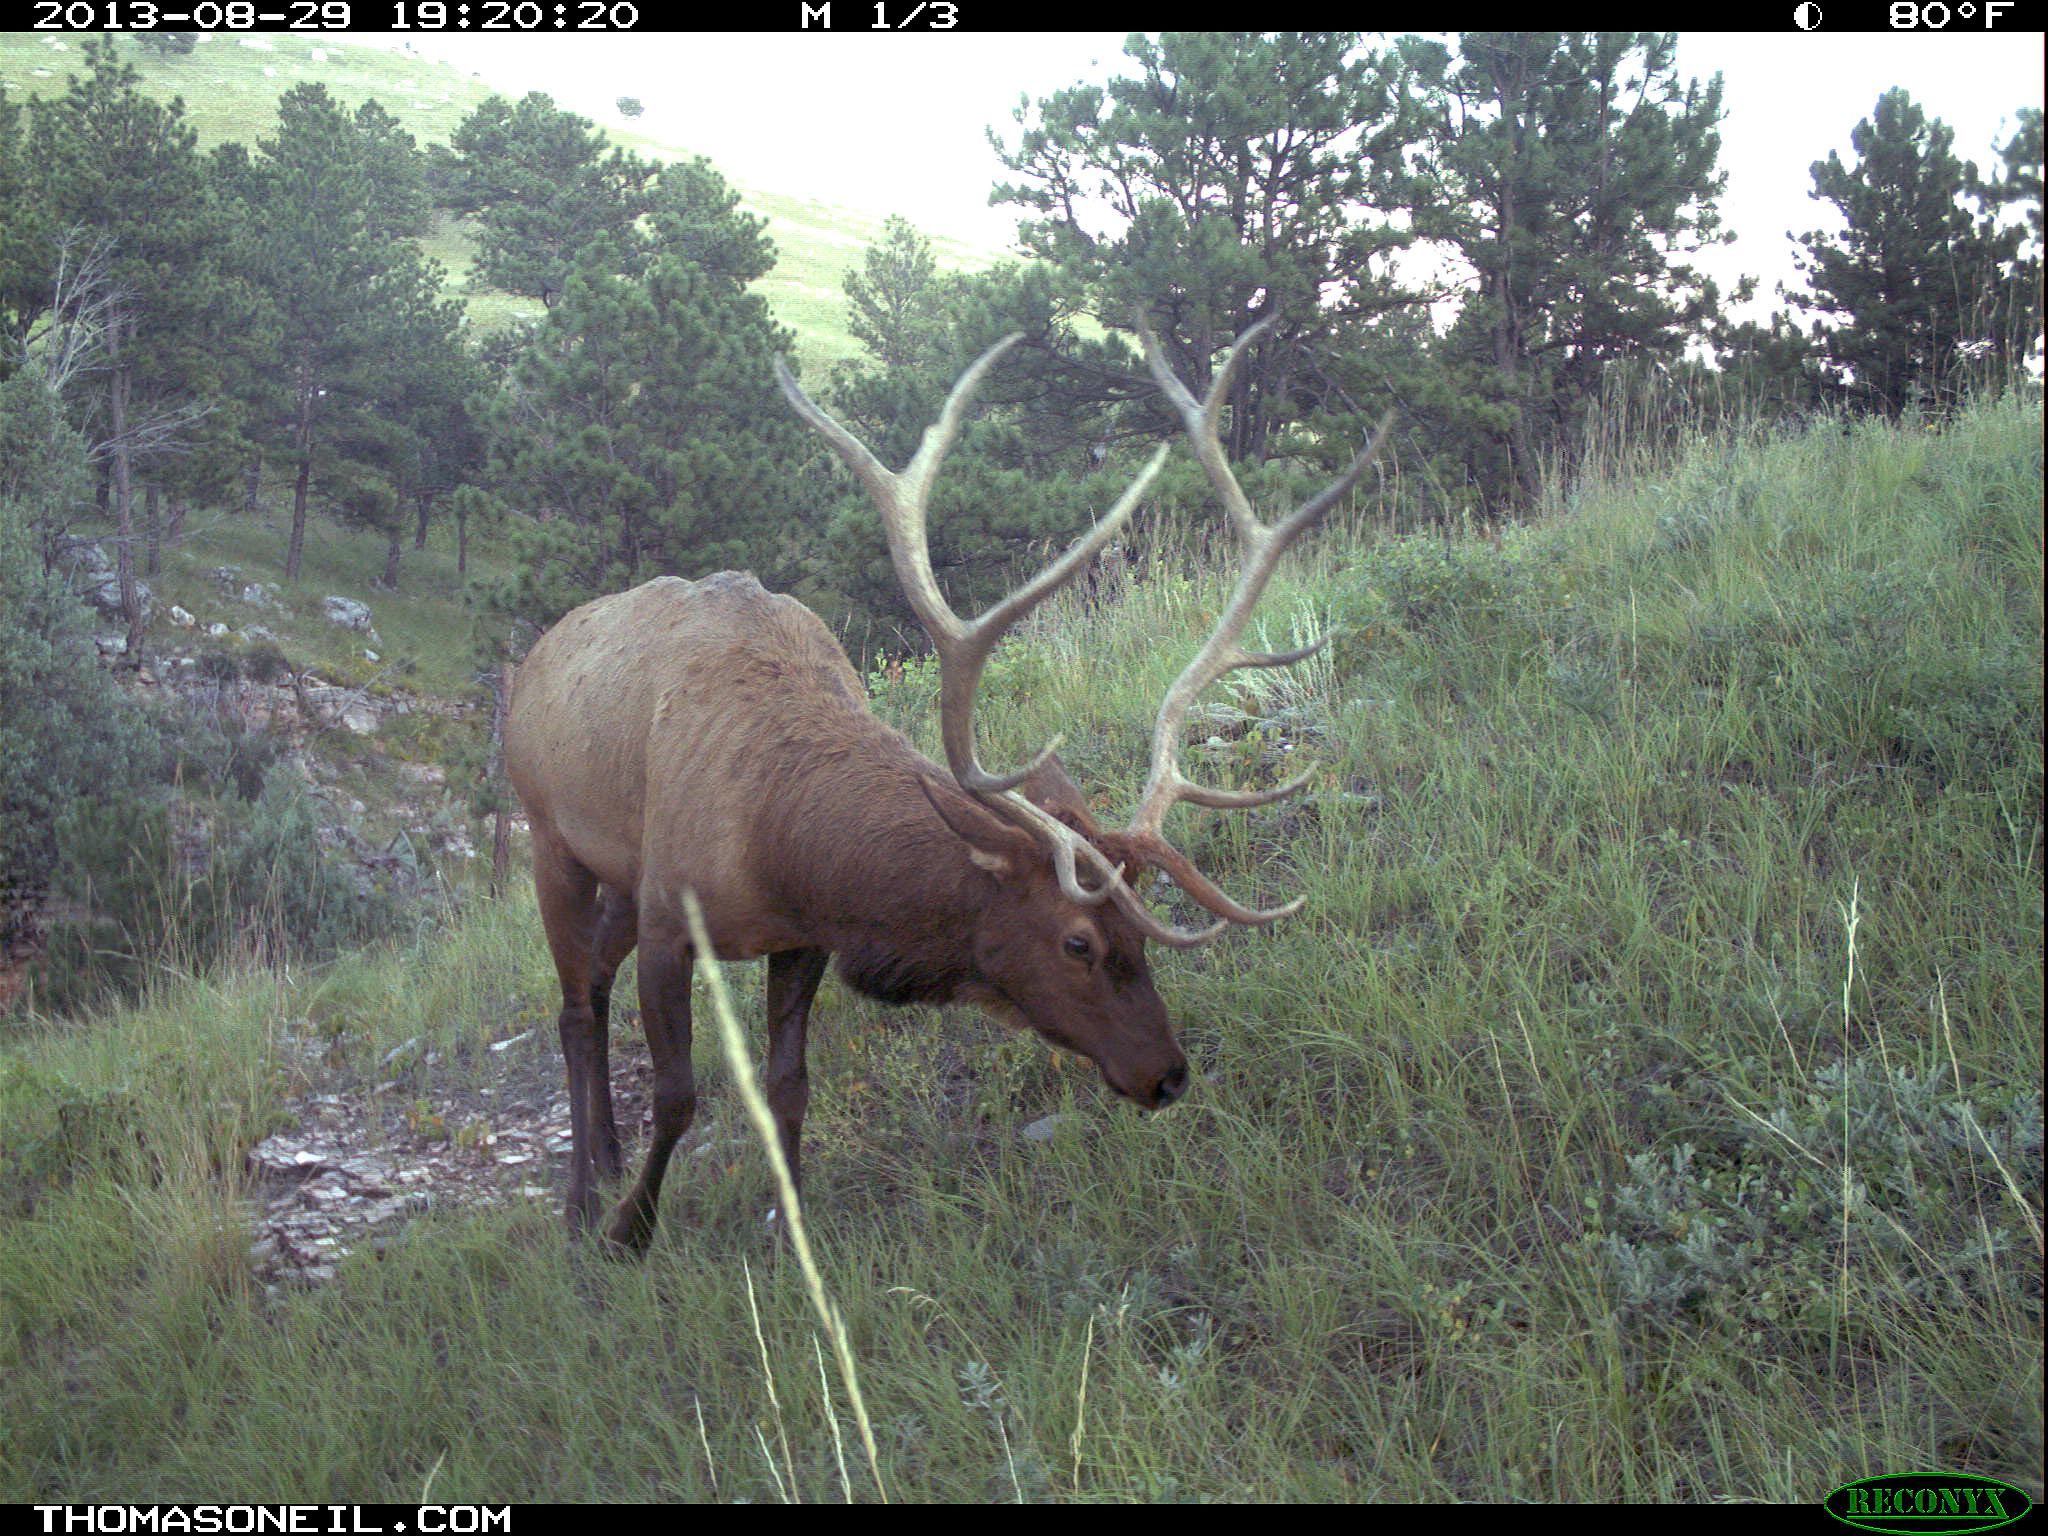 Elk on trail camera, Wind Cave National Park, South Dakota, August 29, 2013.  Click for next photo.